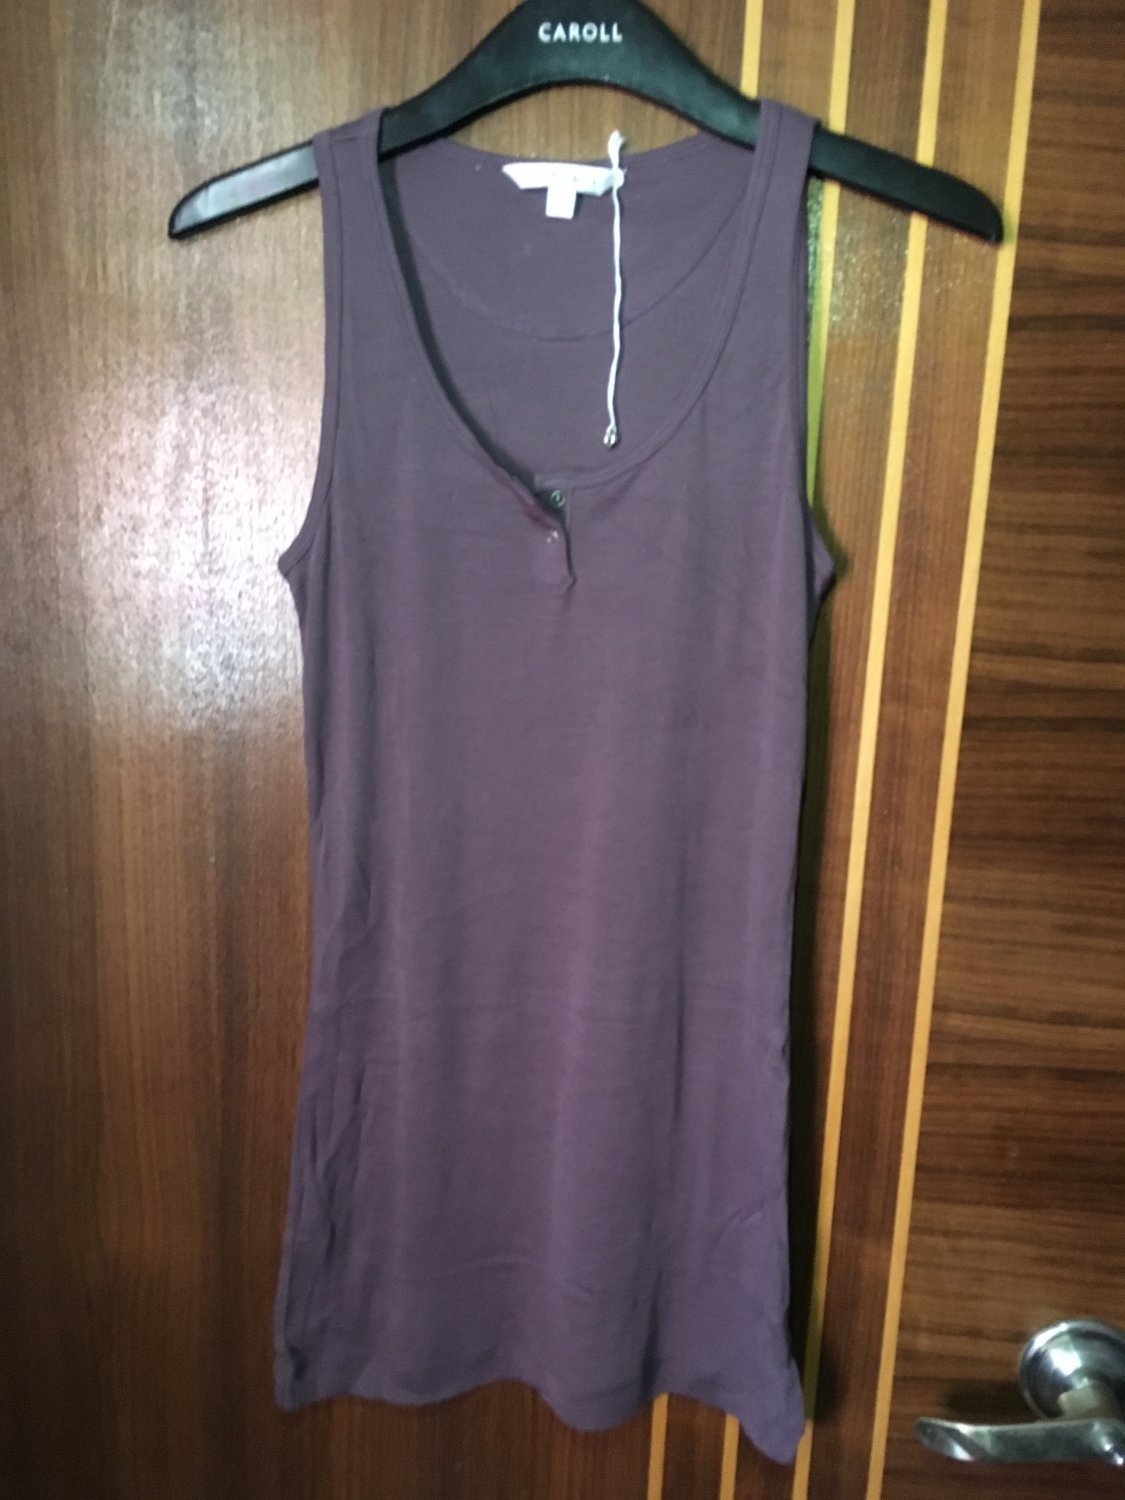 Women's fashion sexy purple cotton tops tanks sport wear accessories clothing gift